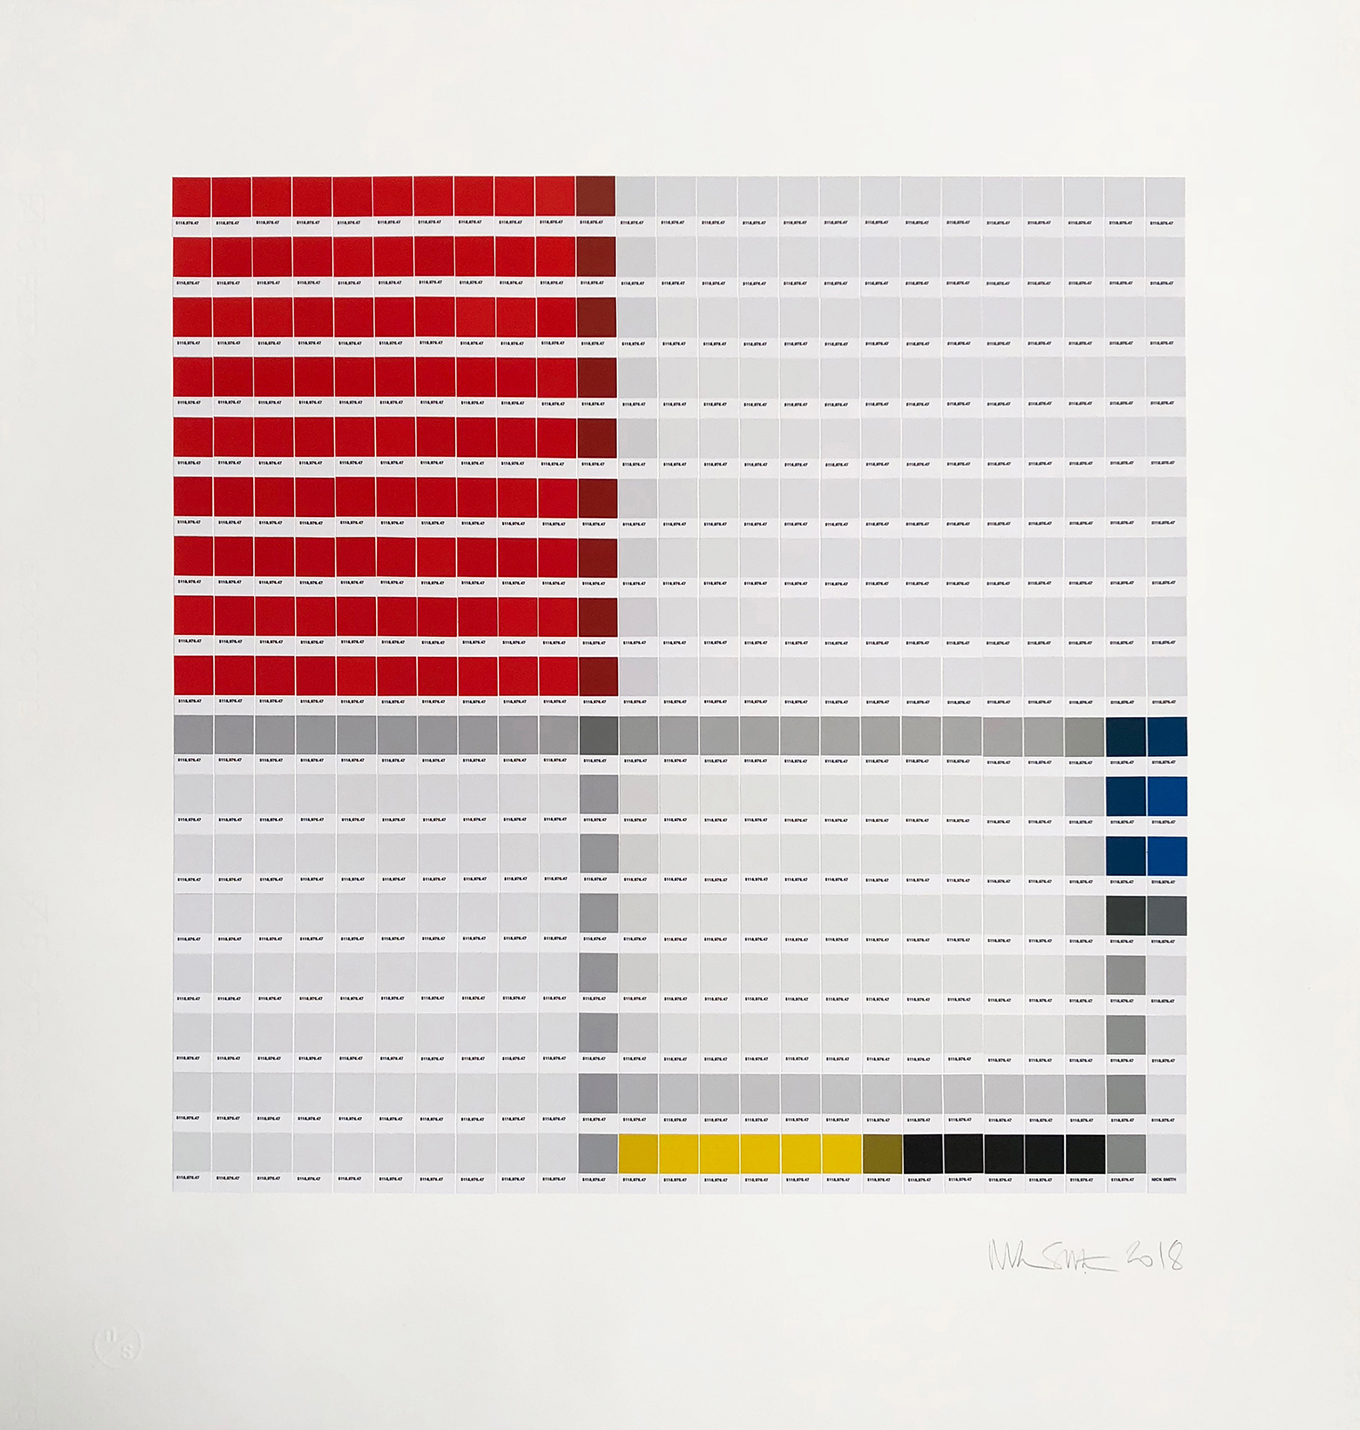 Mondrian - Composition No. III